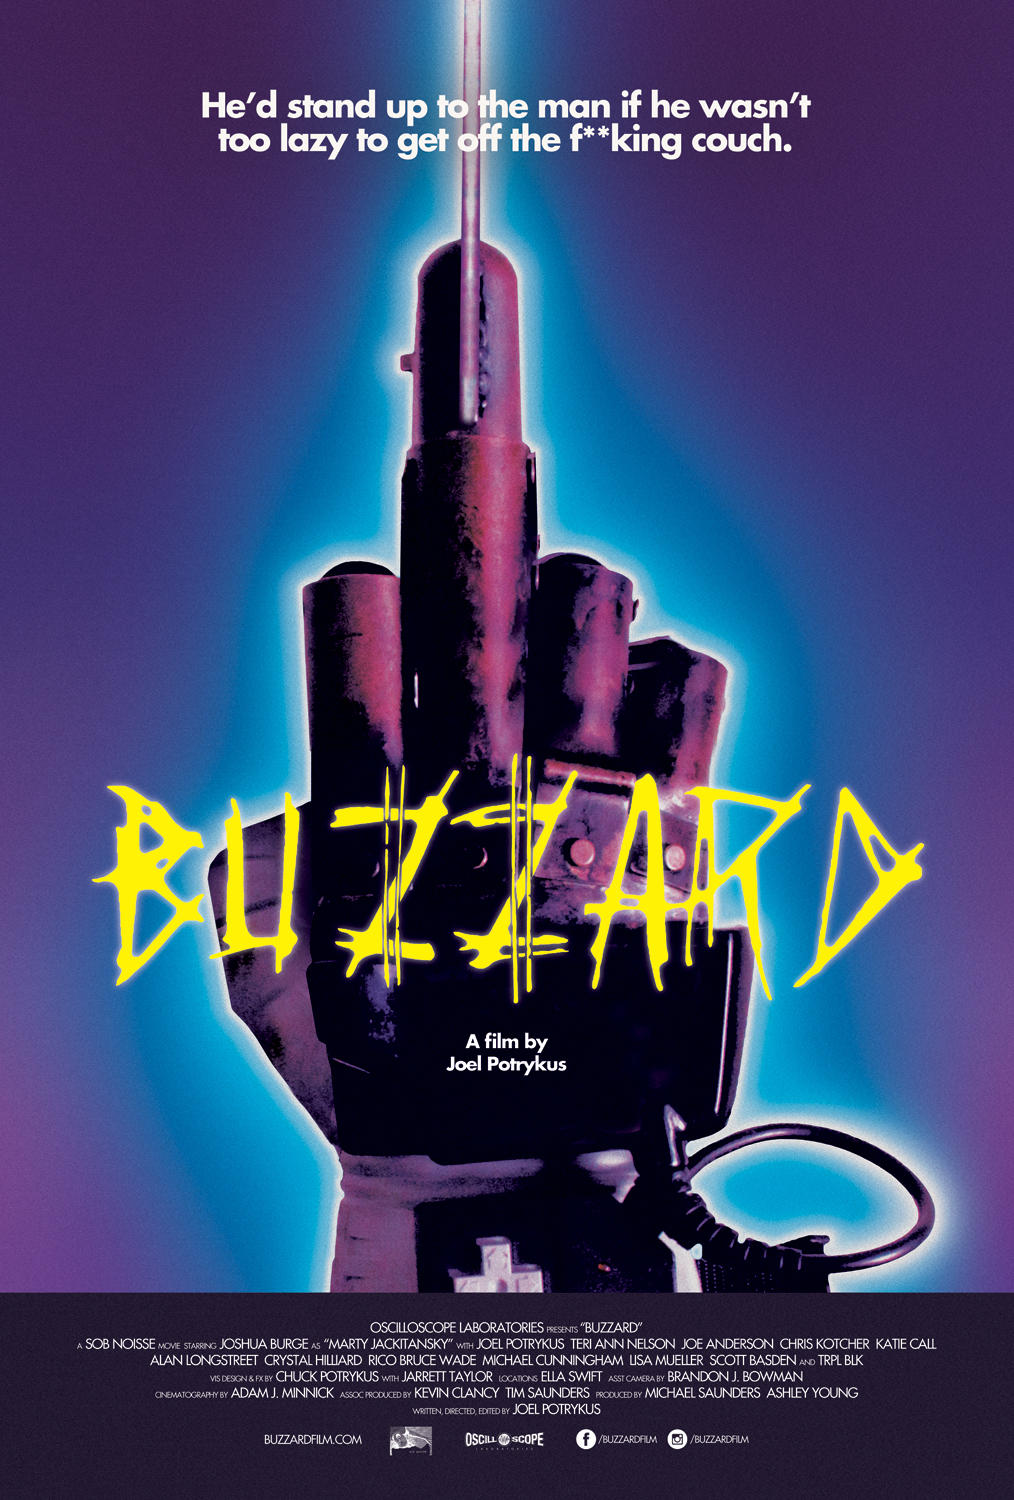 Buzzard (2014) - Directed by: Joel PortykusStarring: Joshua Burge, Joel Potrykus, Joe AndersonRated: NR (Suggest R for Some Language and a Scene of Mild Violence)Running Time: 1 h 37 mTMM Score: 4.5 stars out of 5STRENGTHS: Acting, Writing, OriginalityWEAKNESSES: Last Scene (?), Some Makeup